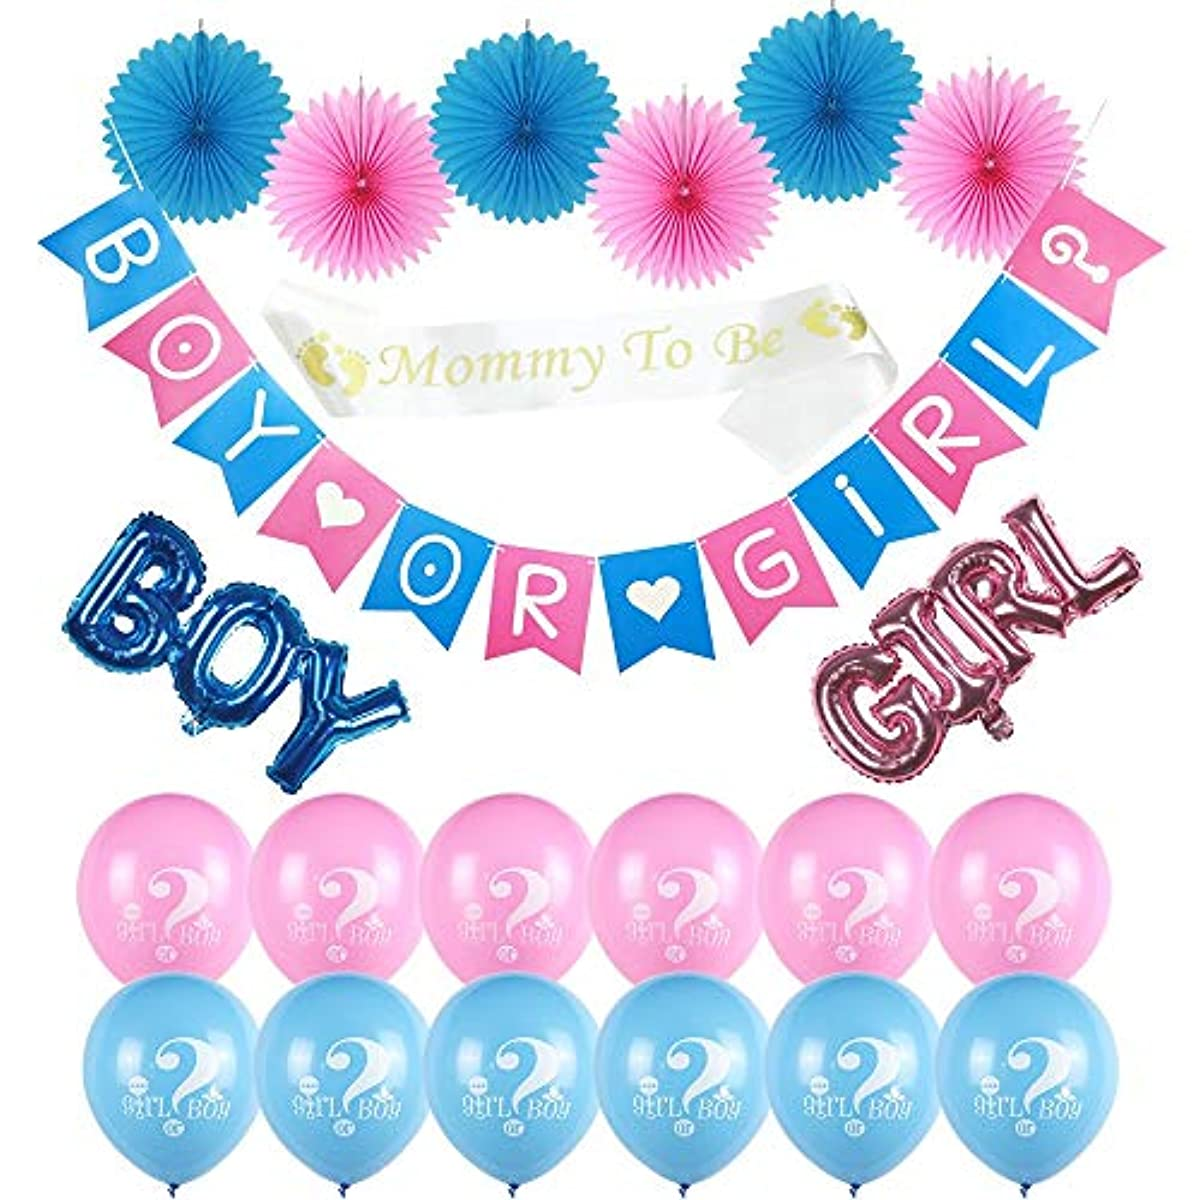 Baby Shower Decorations   Gender Reveal Party Supplies Banner   Boy or Girl Banner and Balloons   Boy and Girl Foil Balloons   Pink and Blue Paper Fans   **Free Gift for Mommy to BE**